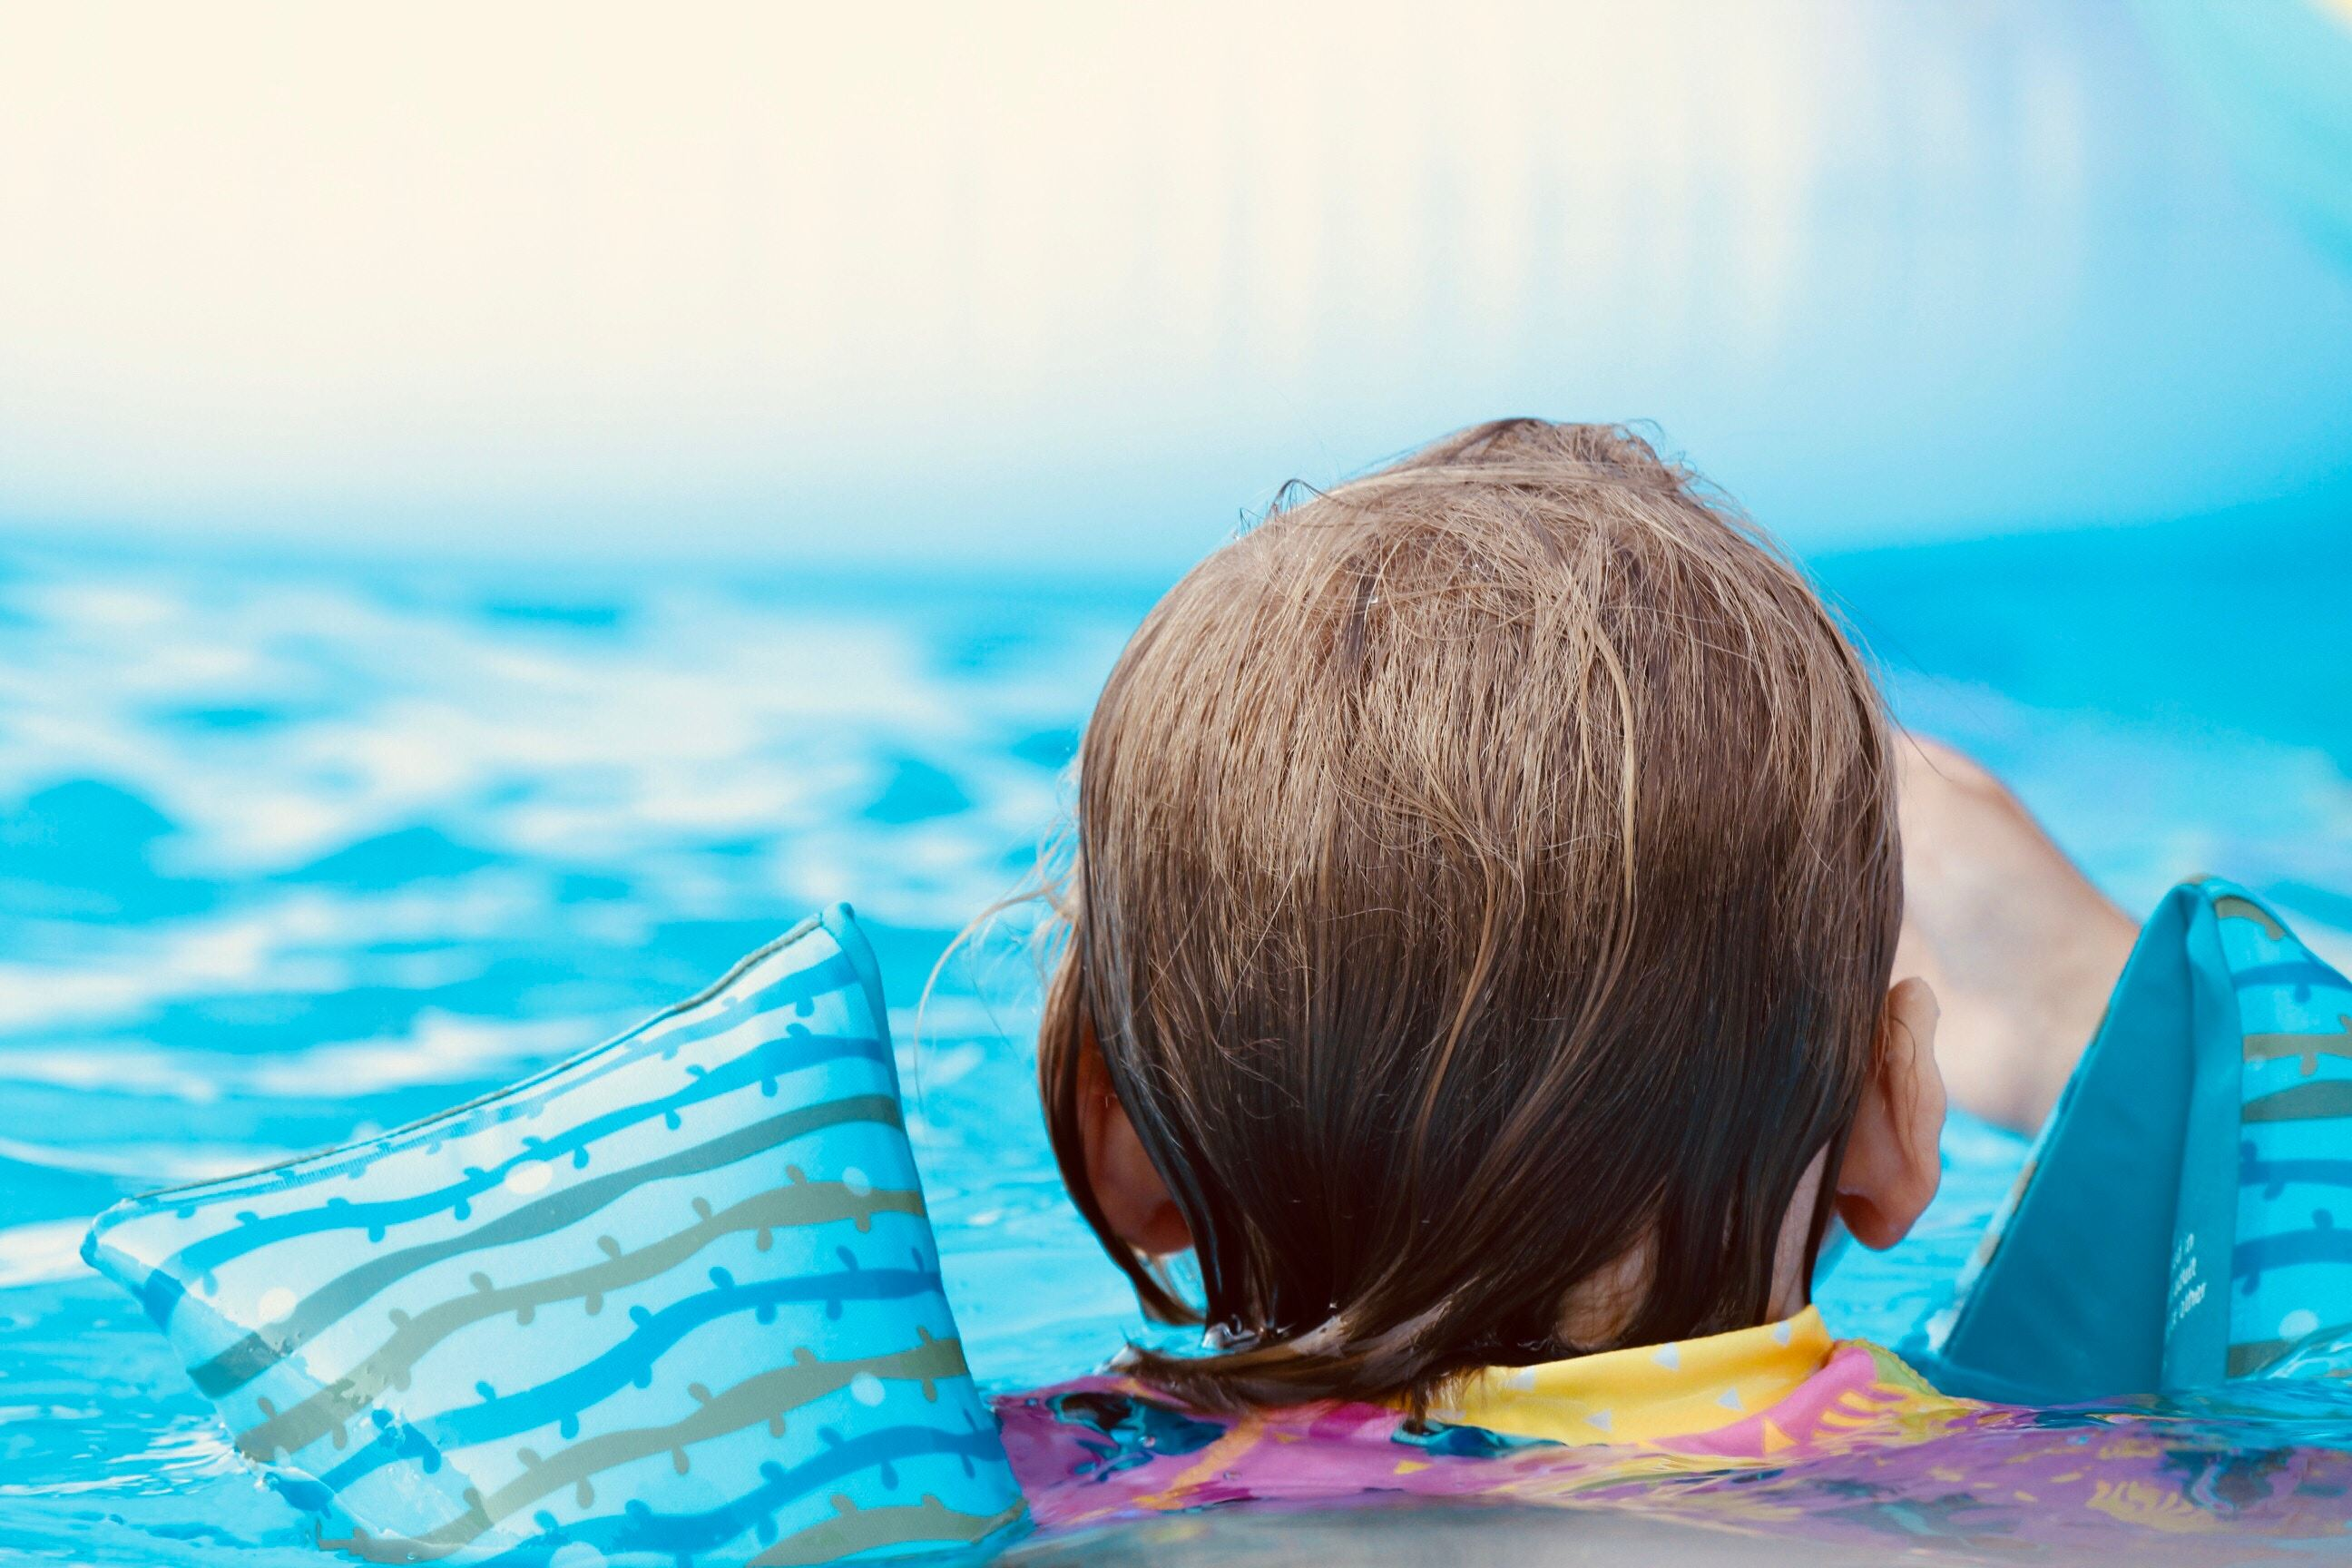 Photo of the back of a young child in a blue pool wearing inflatable arm bands.